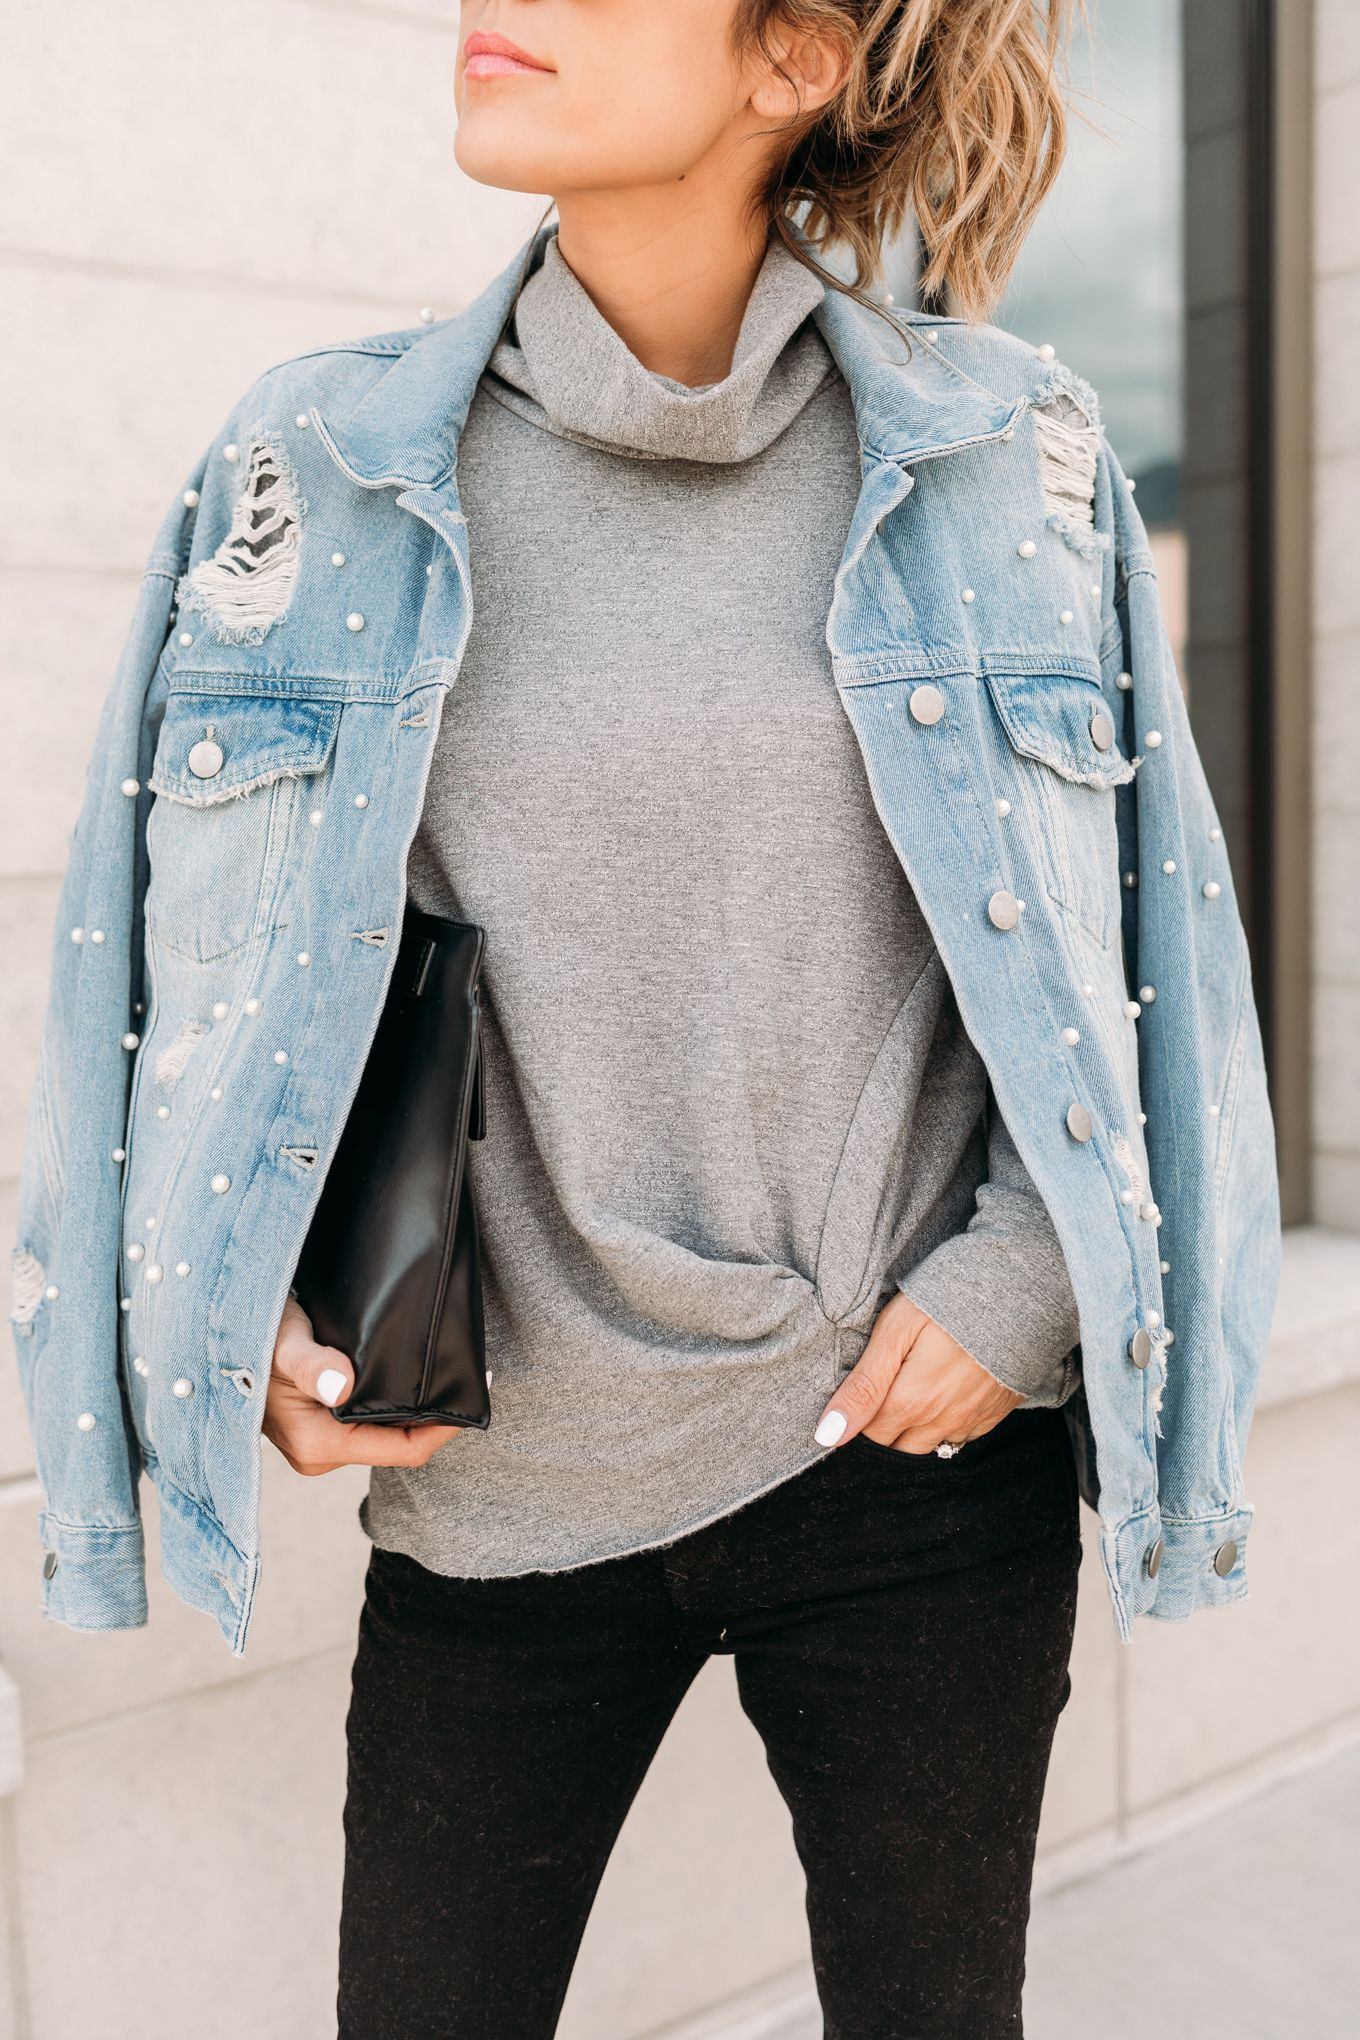 Flannel jacket with fur inside  Oversized distressed denim jacket with pearl detailing  For Stitch